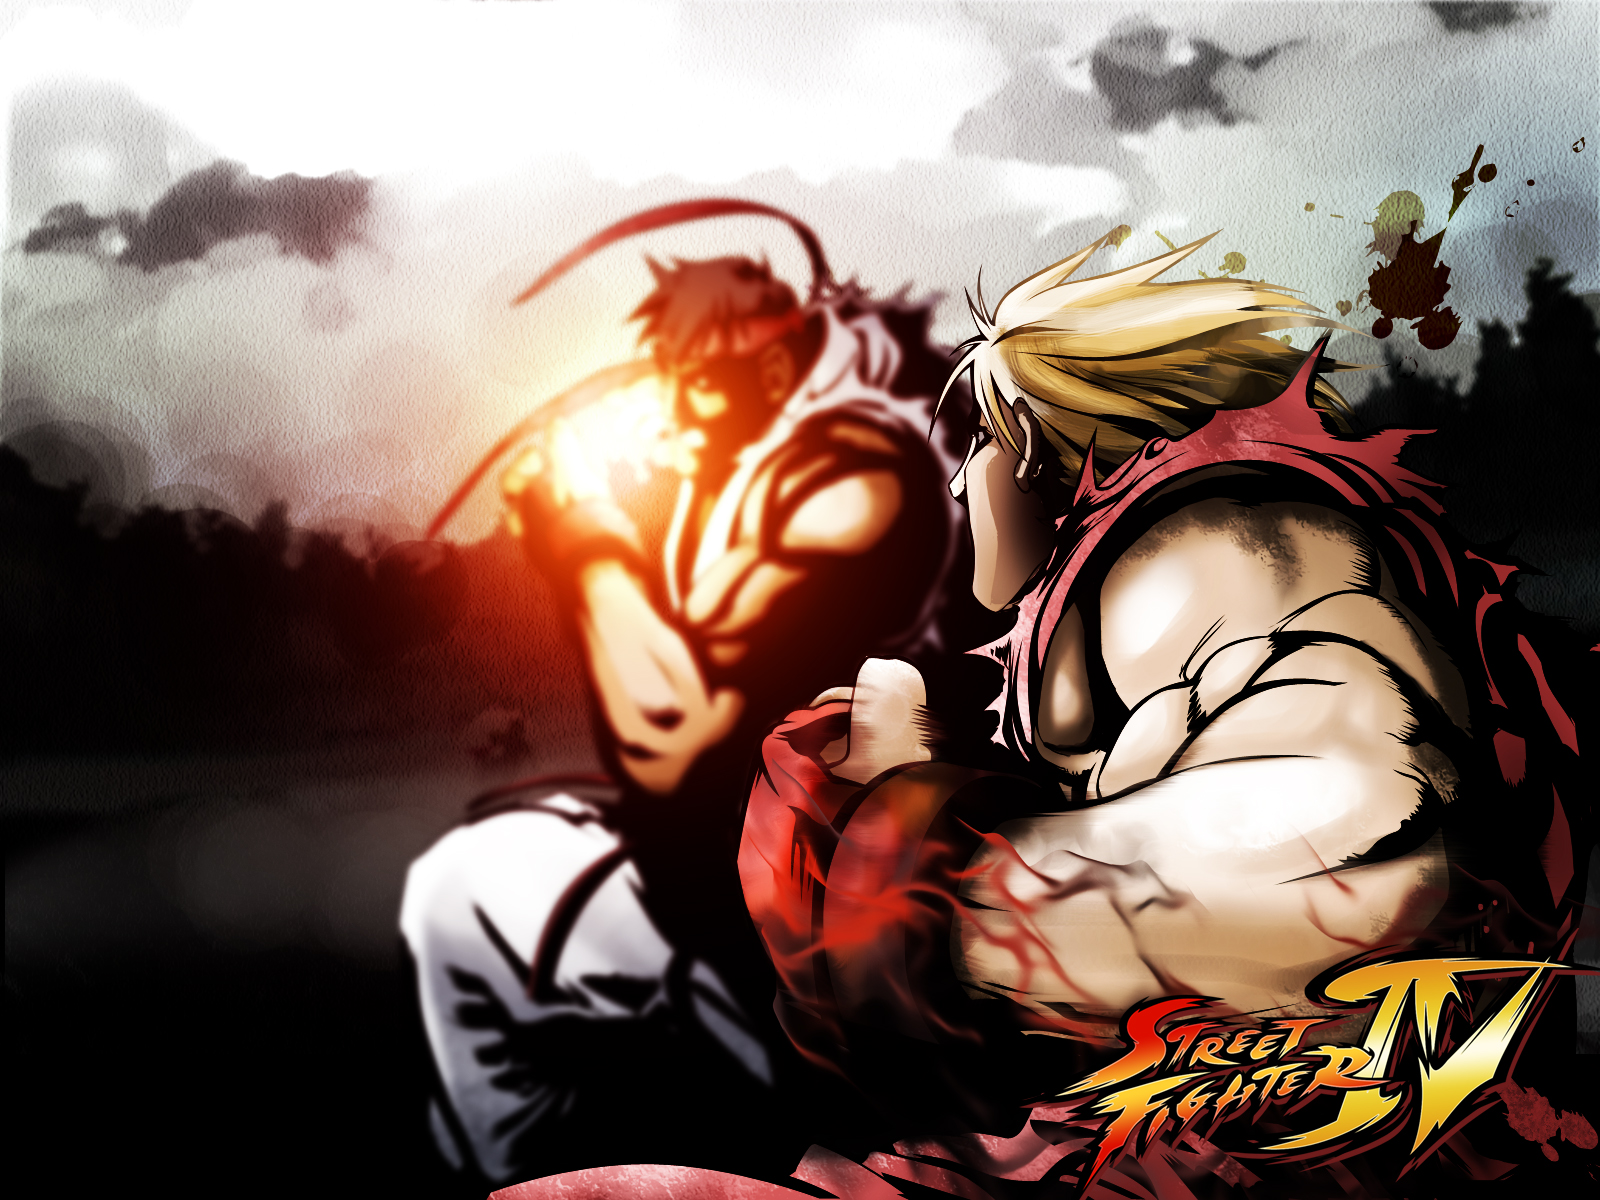 Street Fighter IV | 2009 | Repack | FULL |(HF)